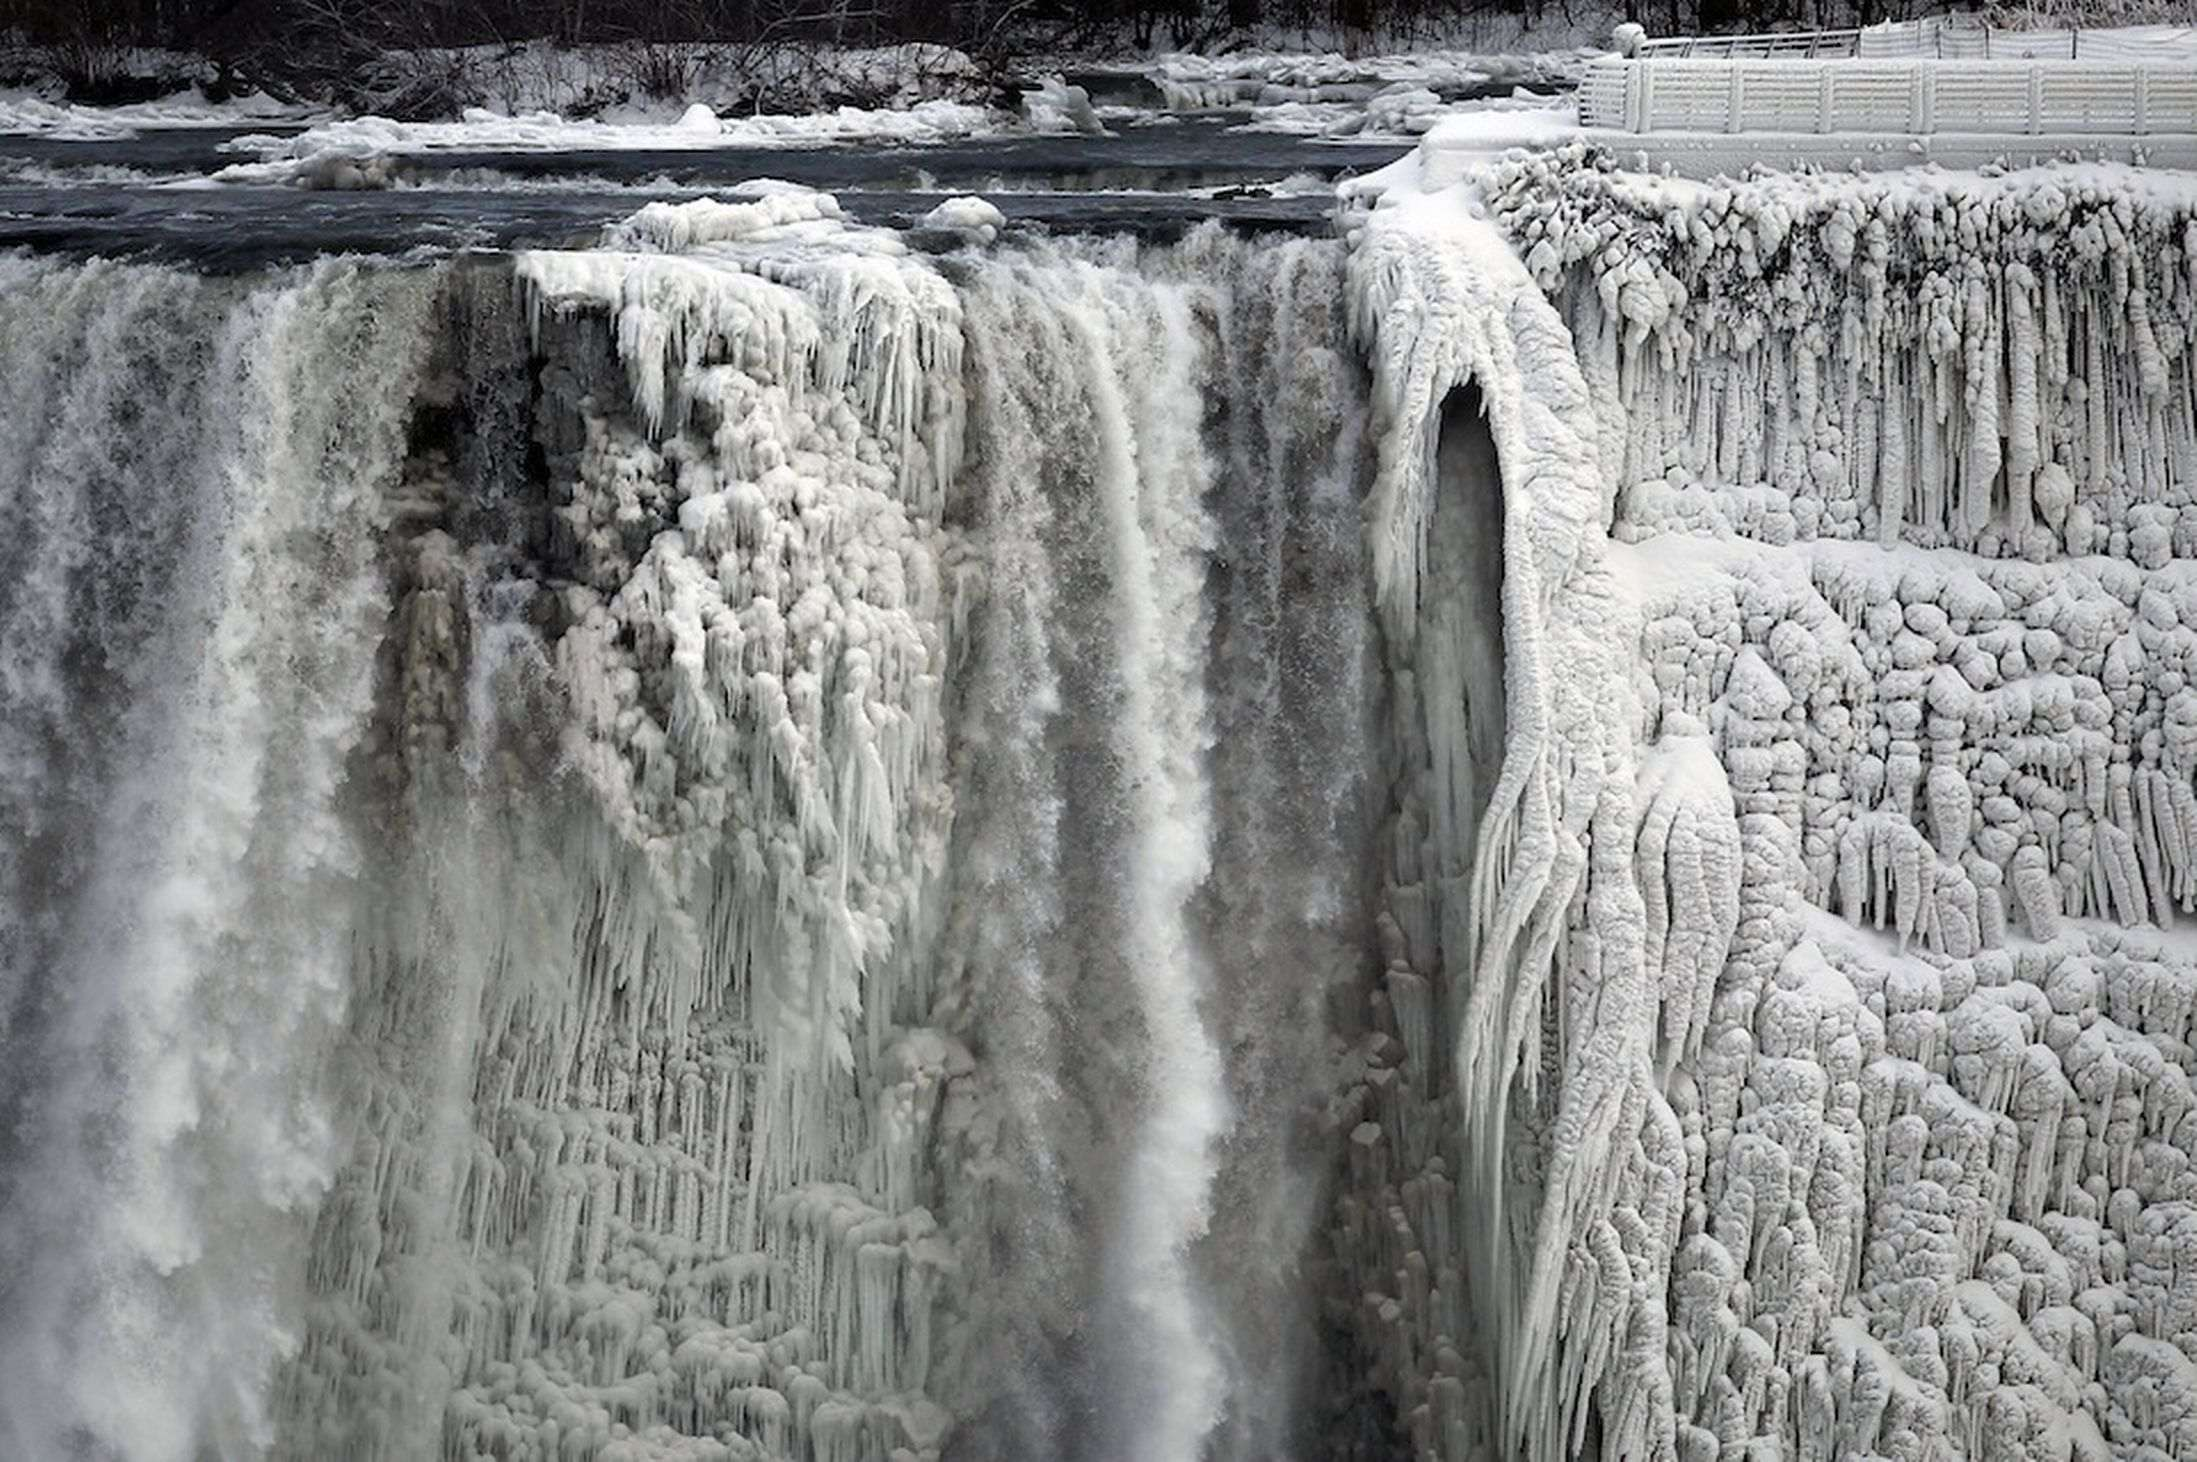 Niagara-Falls-freezes-as-polar-vortex-grips-North-America-3003777_R